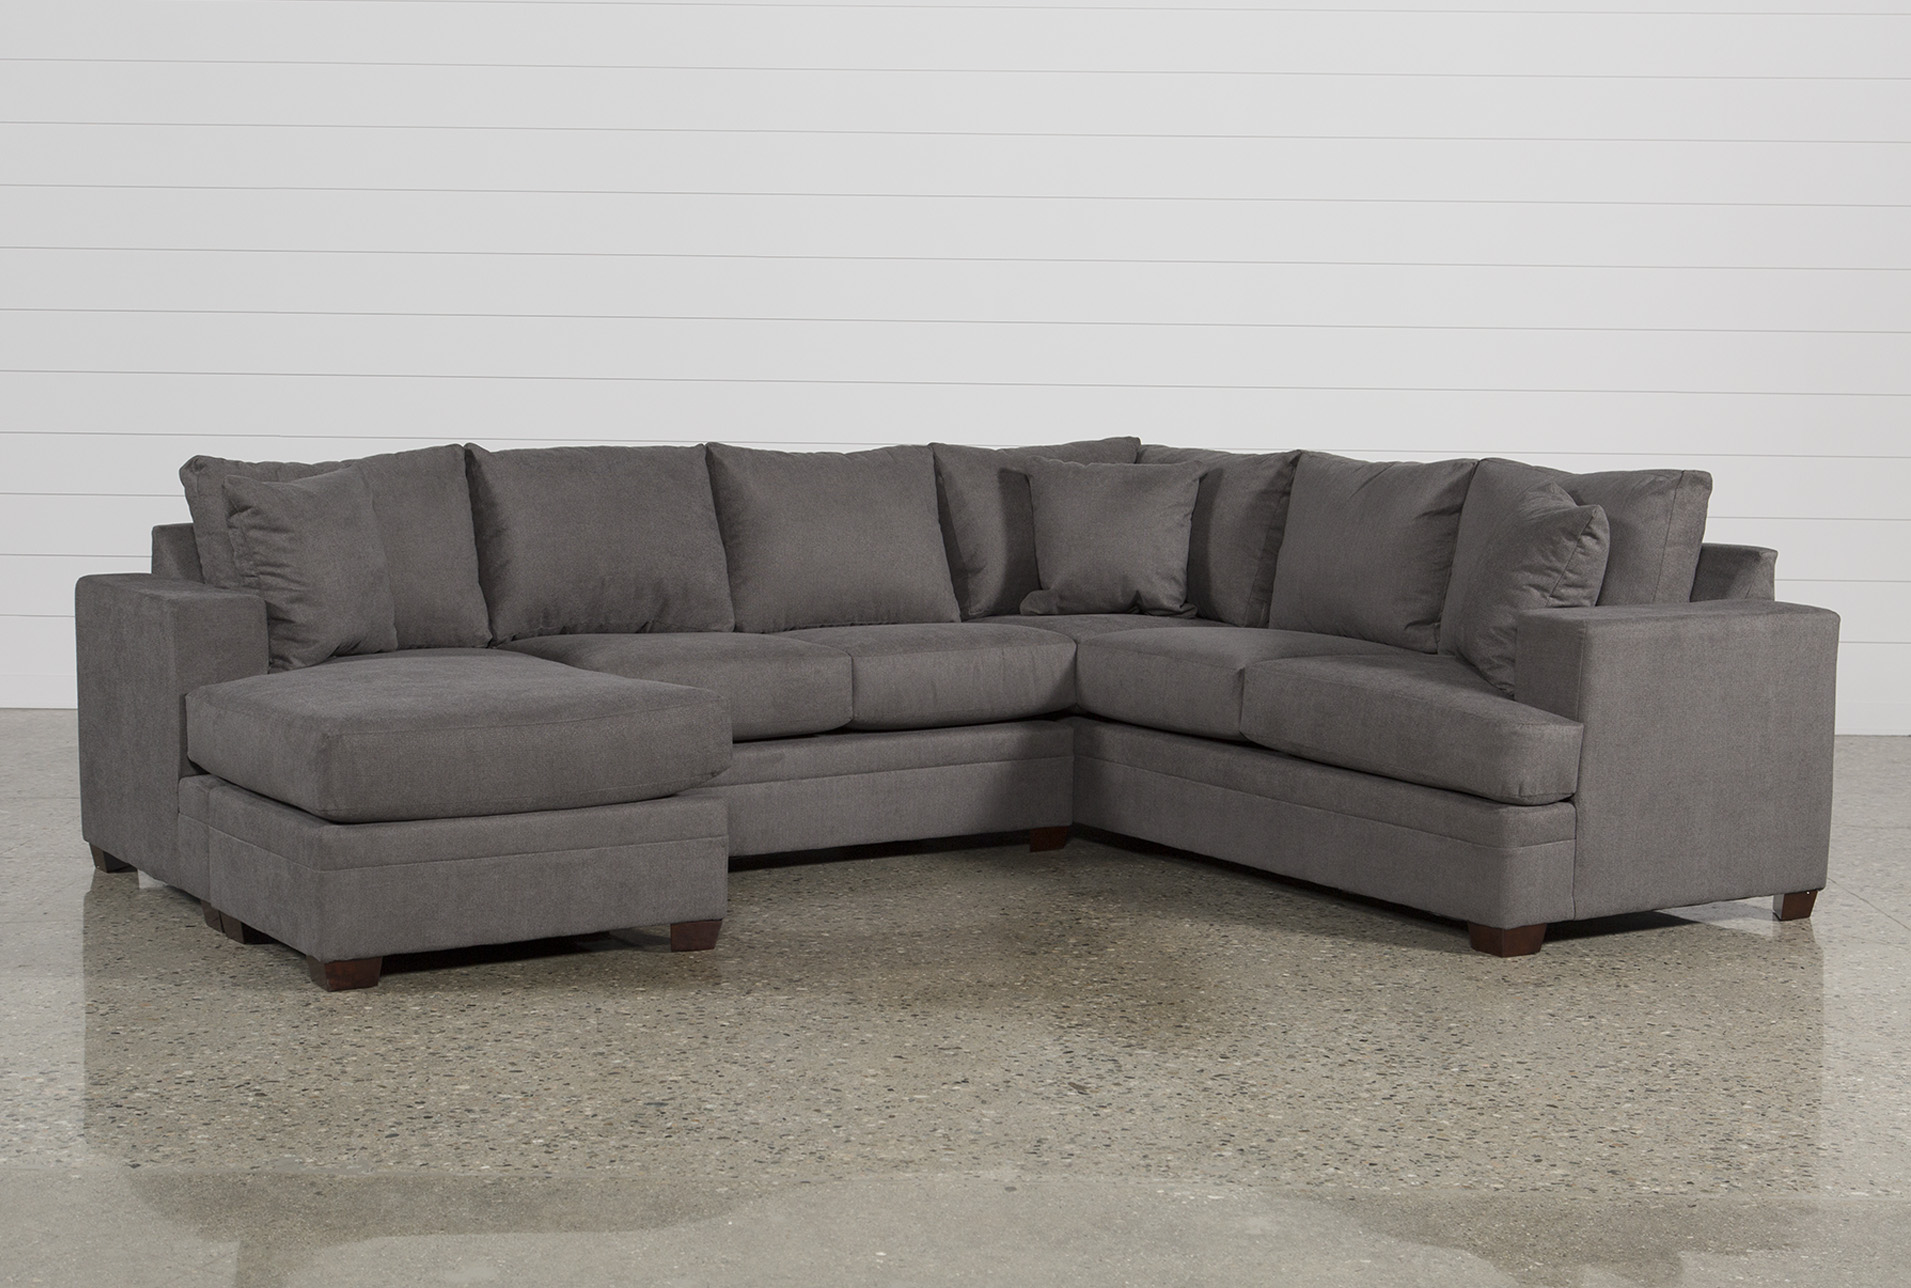 Exceptional Kerri 2 Piece Sectional W/Laf Chaise (Qty: 1) Has Been Successfully Added  To Your Cart.